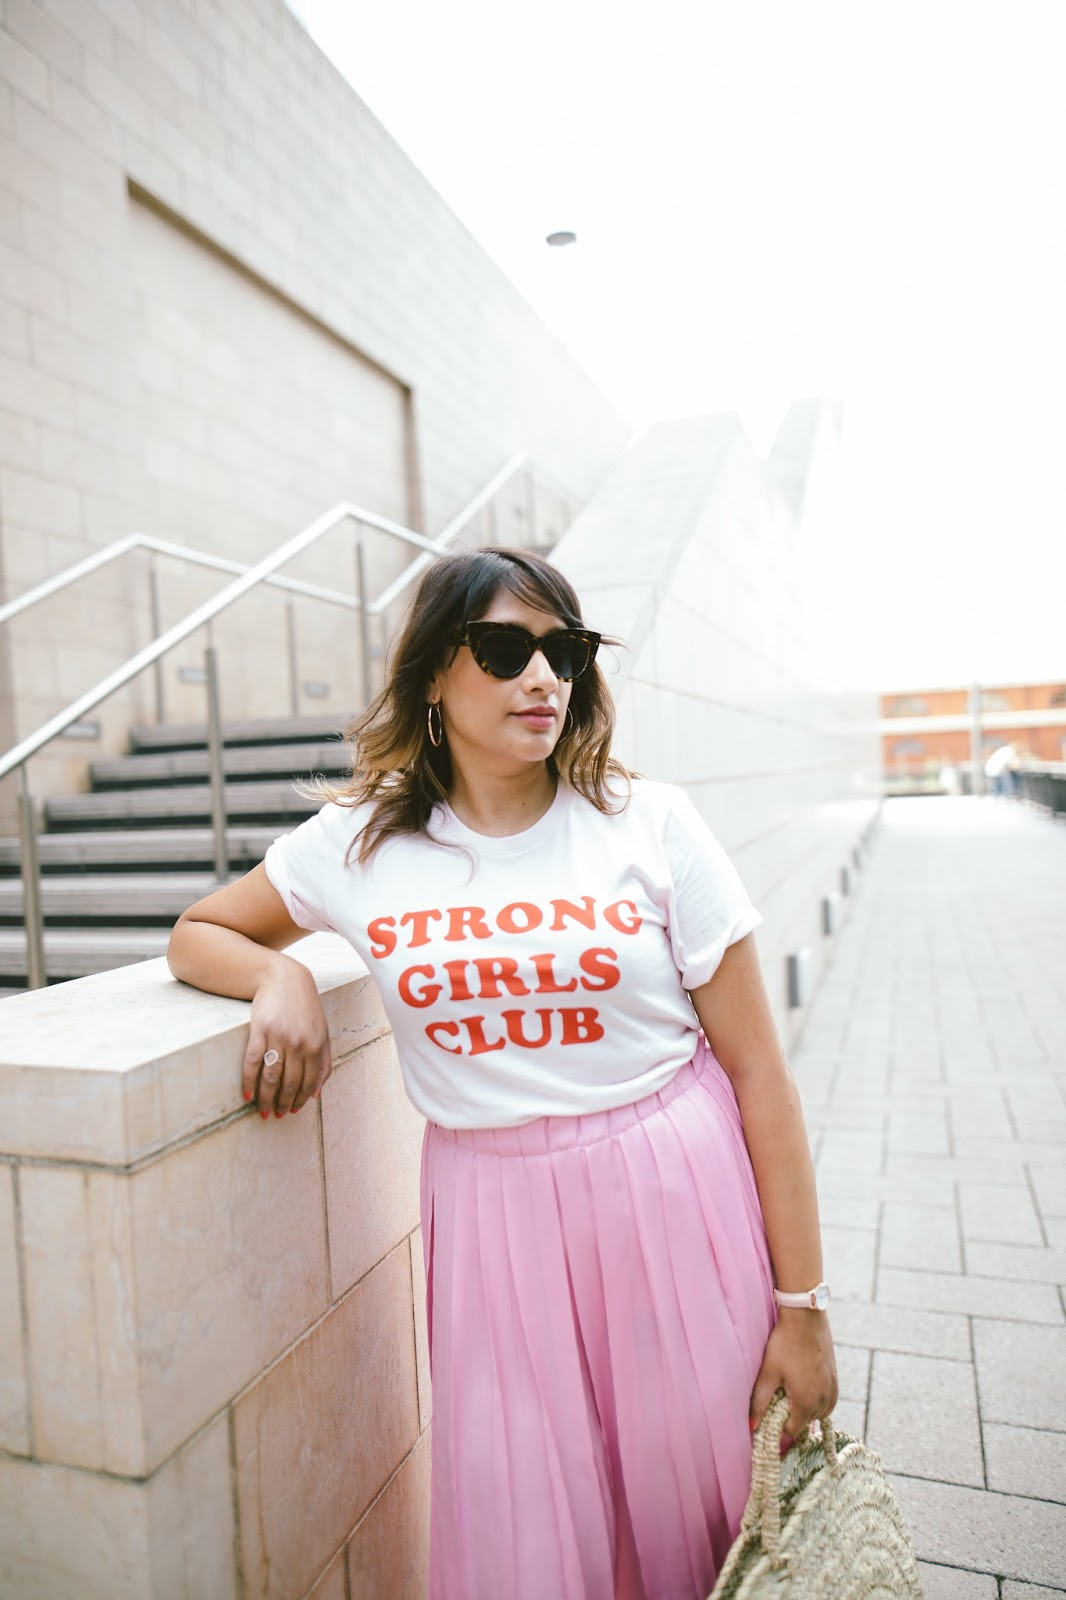 Strong Girls Club t-shirt